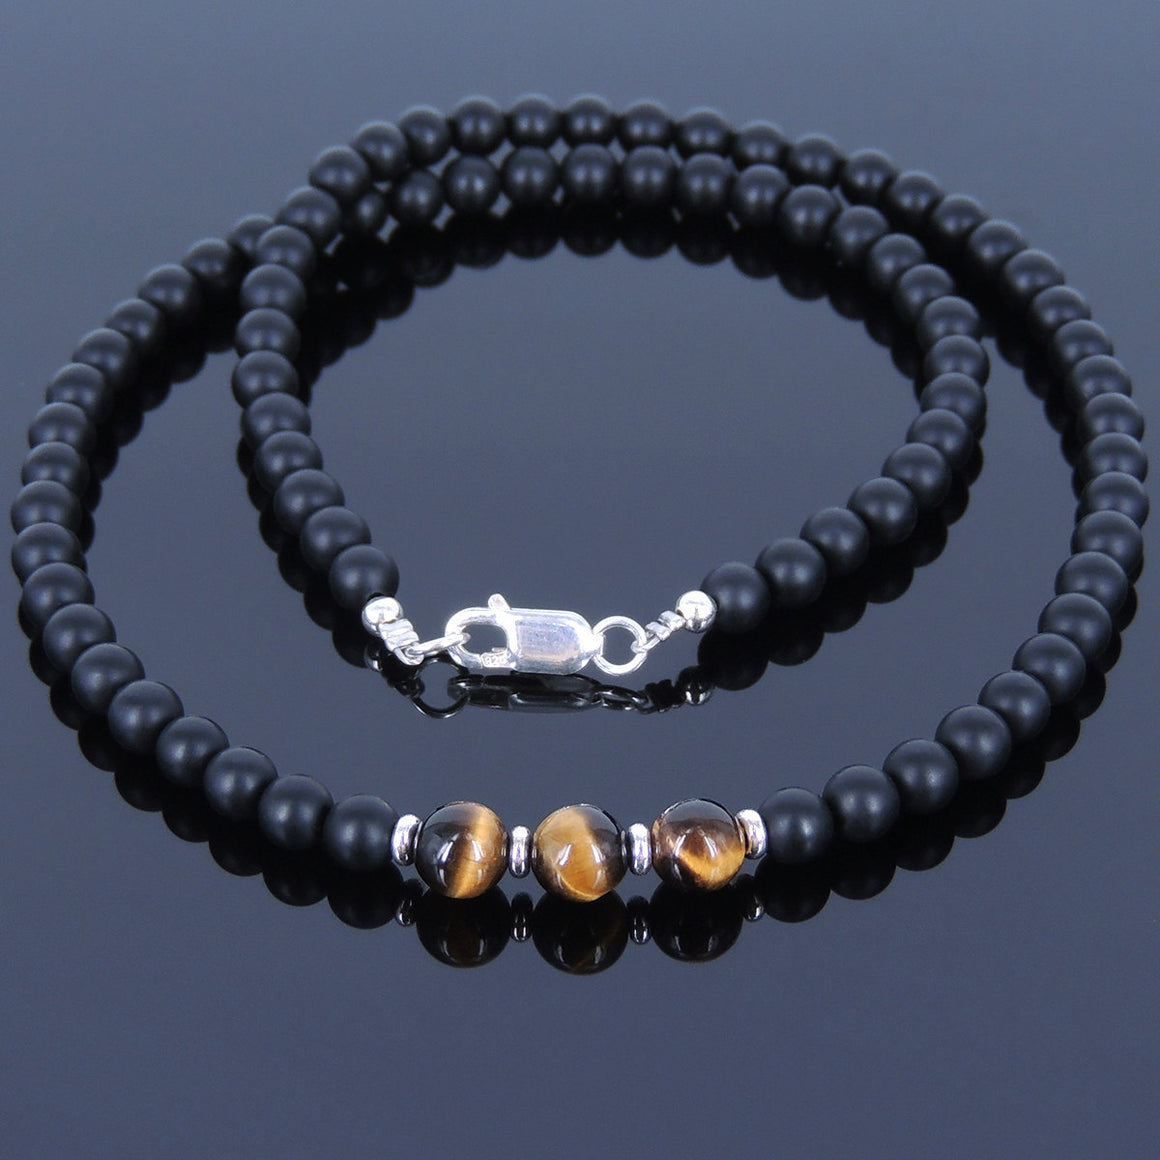 Matte Black Onyx & Brown Tiger Eye Healing Gemstone Necklace with S925 Sterling Silver Spacers & Clasp - Handmade by Gem & Silver NK029